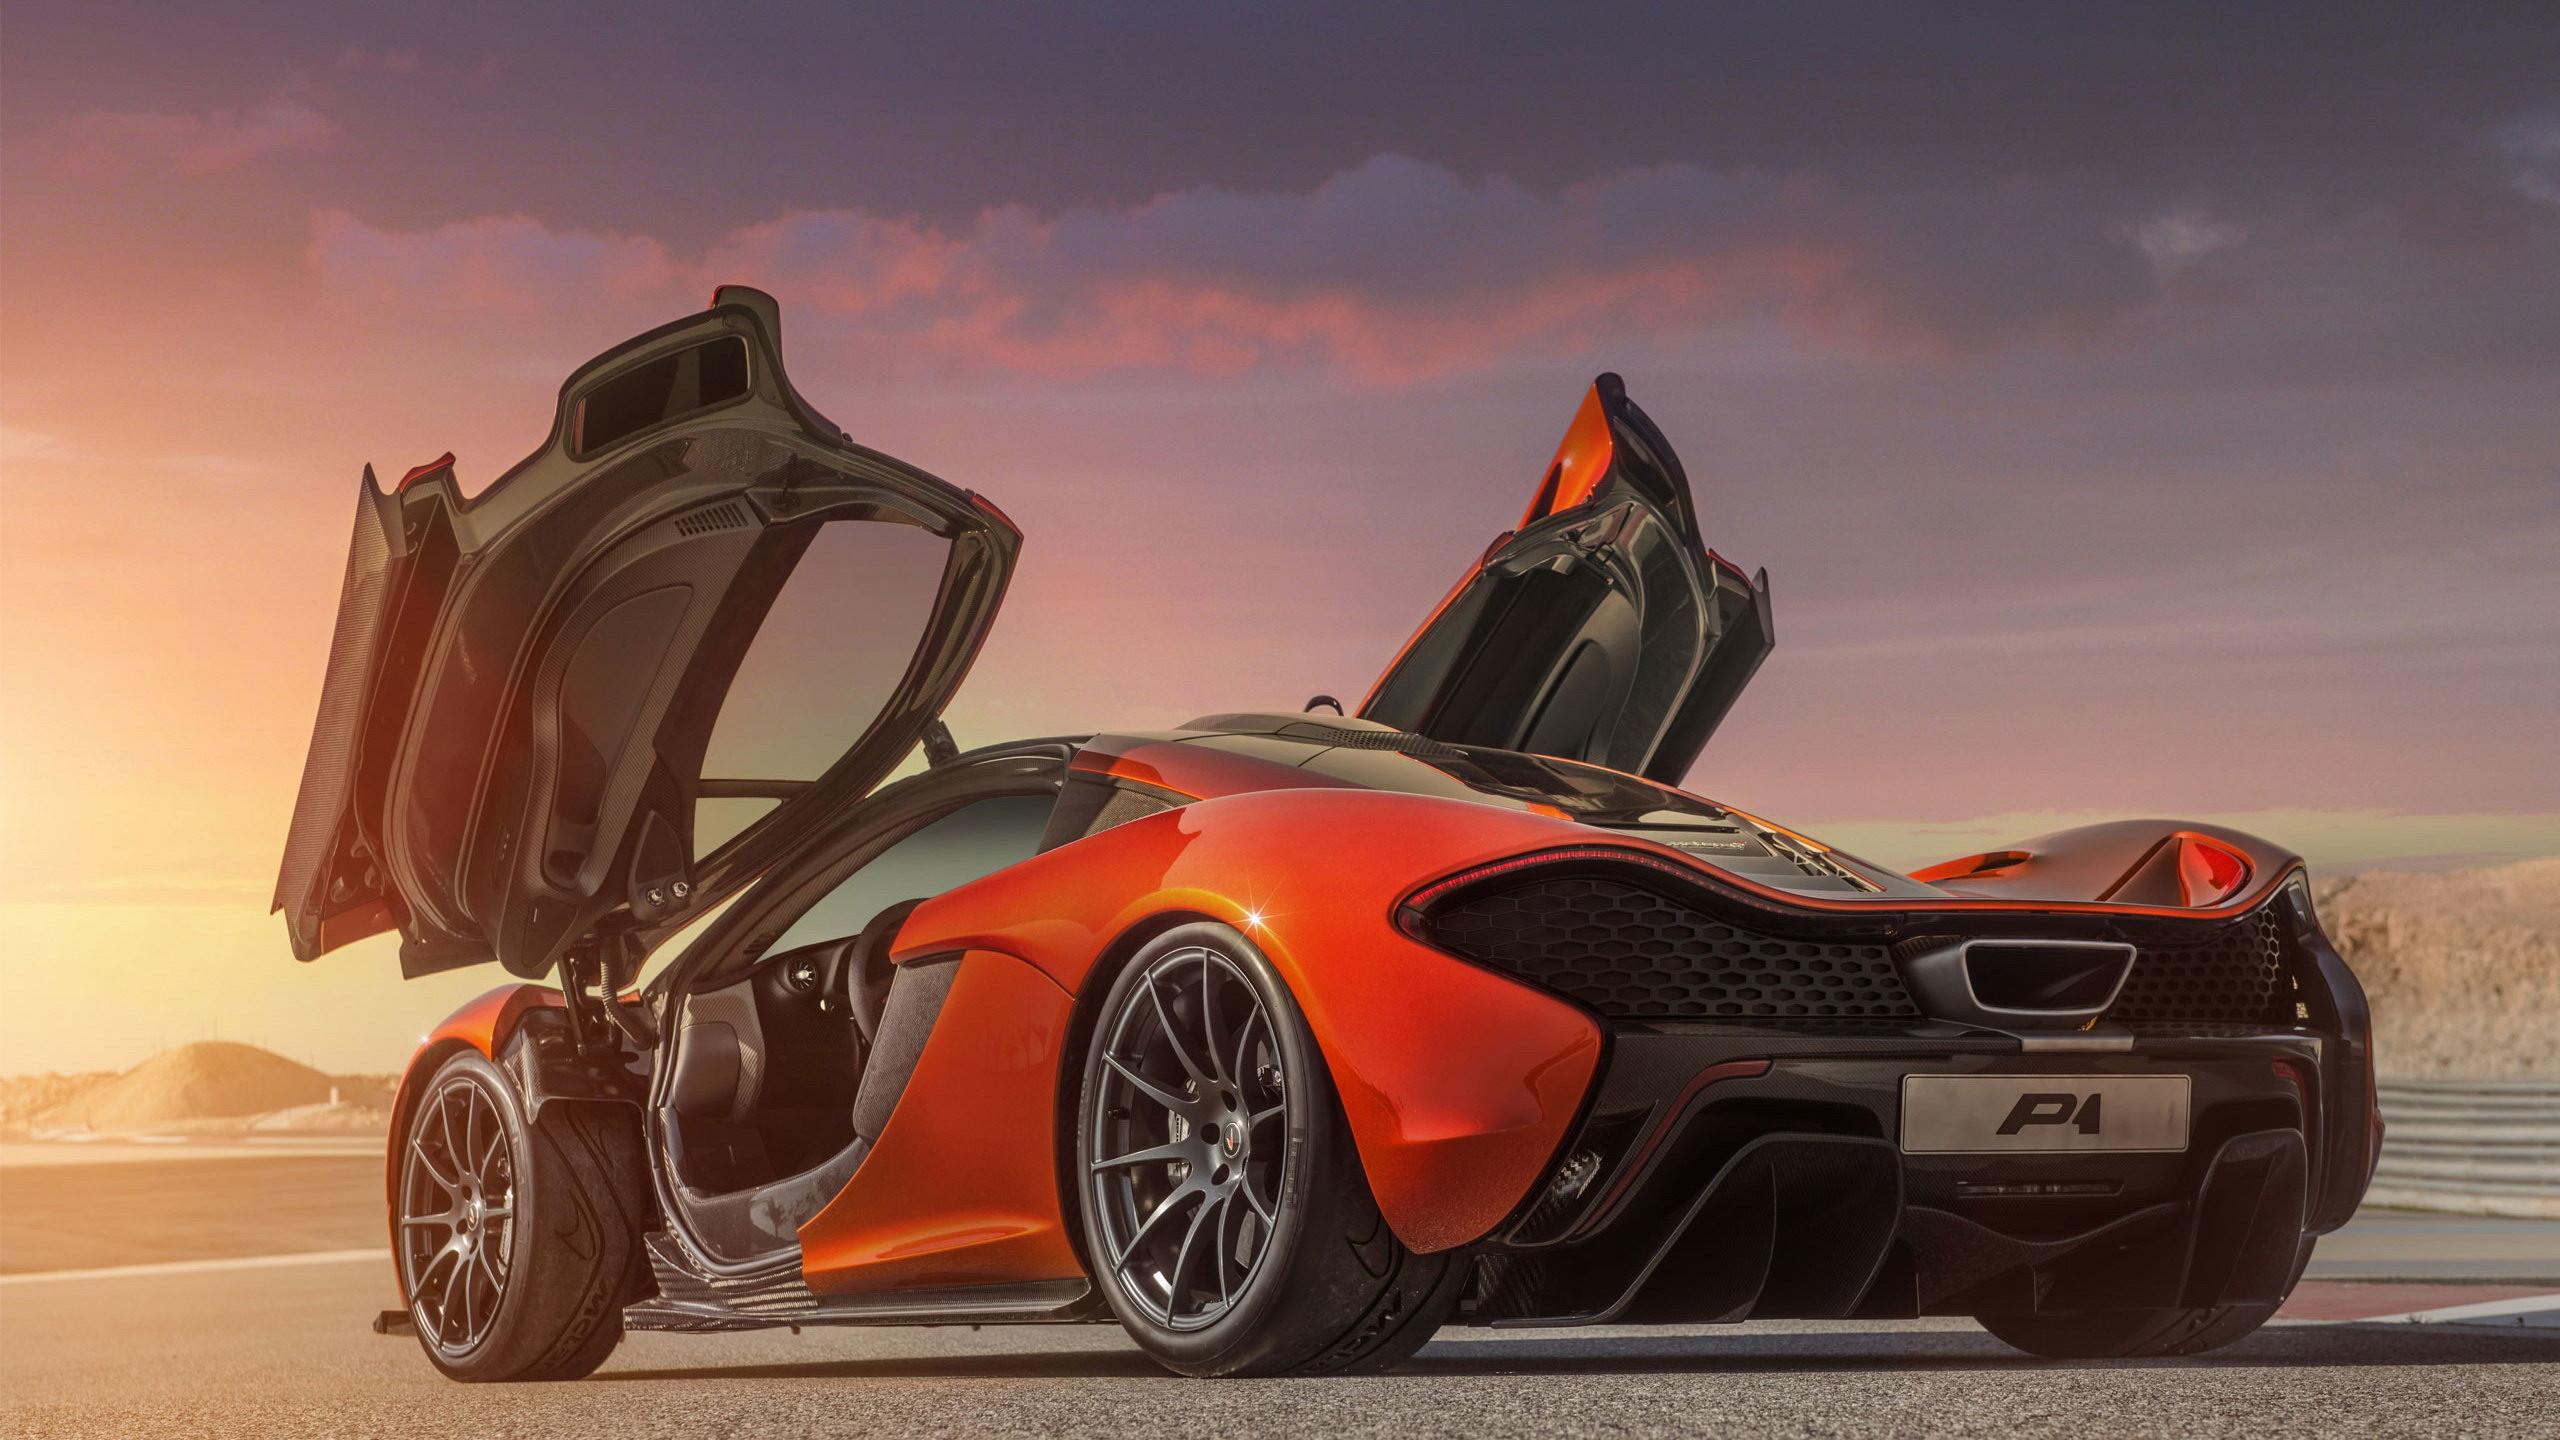 Fastest Car In The World Wallpaper (68+ Images